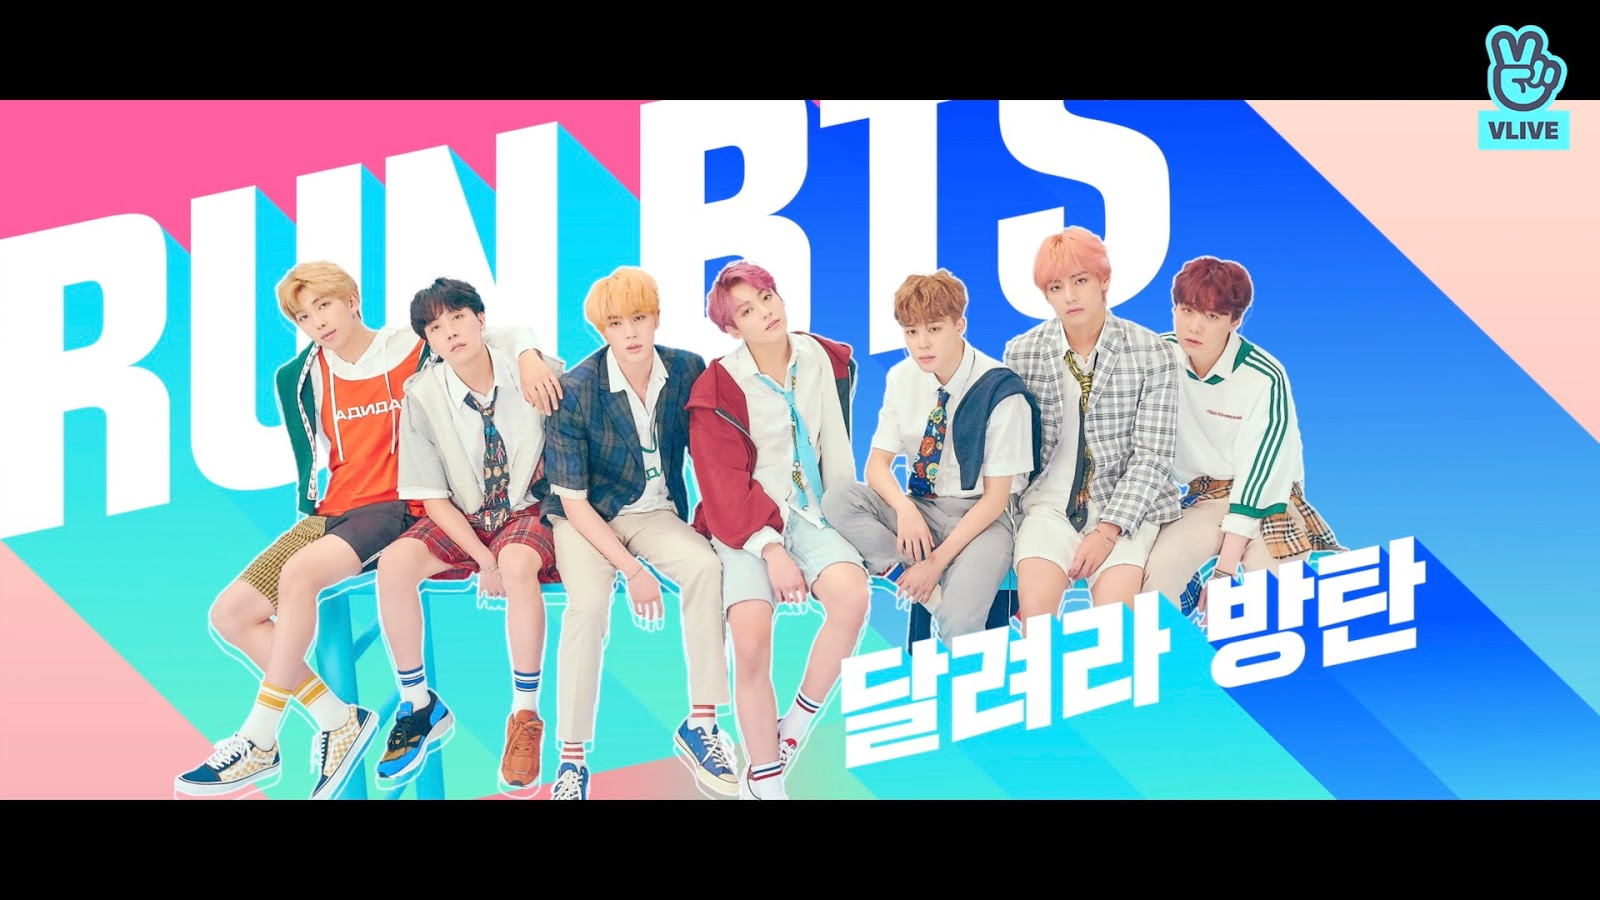 V LIVE] Download BTS – Run! BTS! Full with English